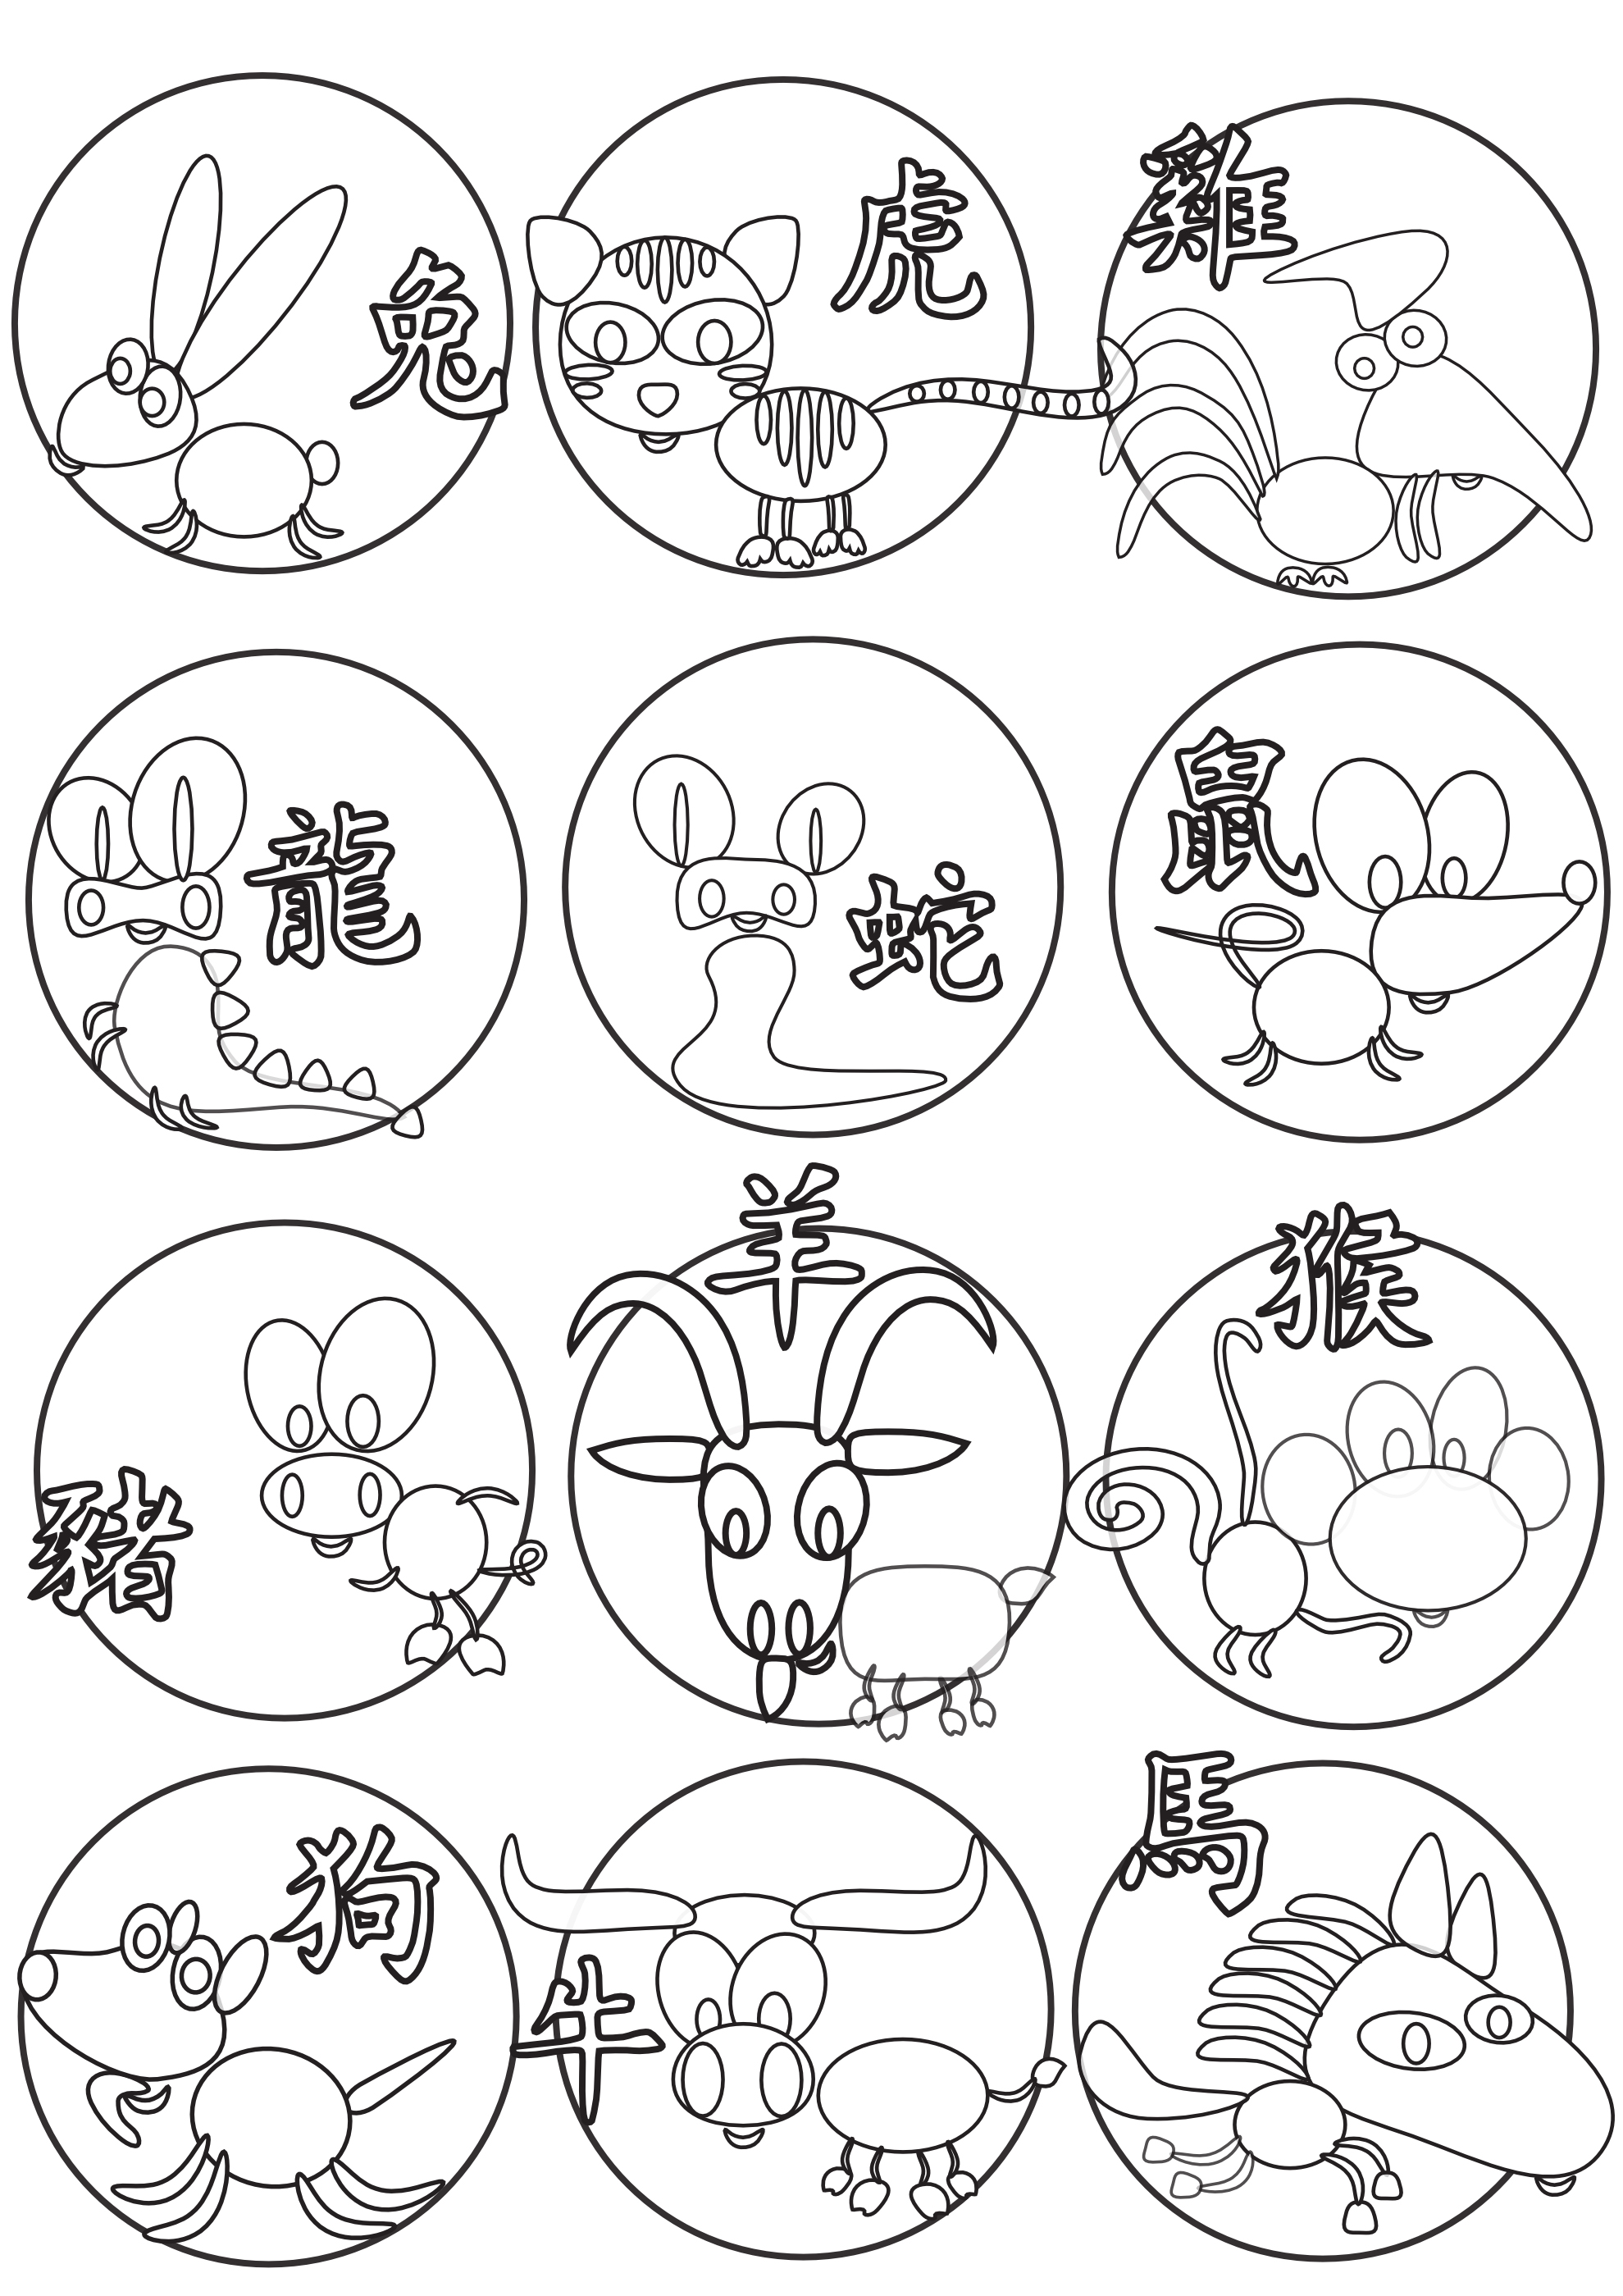 - Chinese New Year Coloring Pages - Best Coloring Pages For Kids